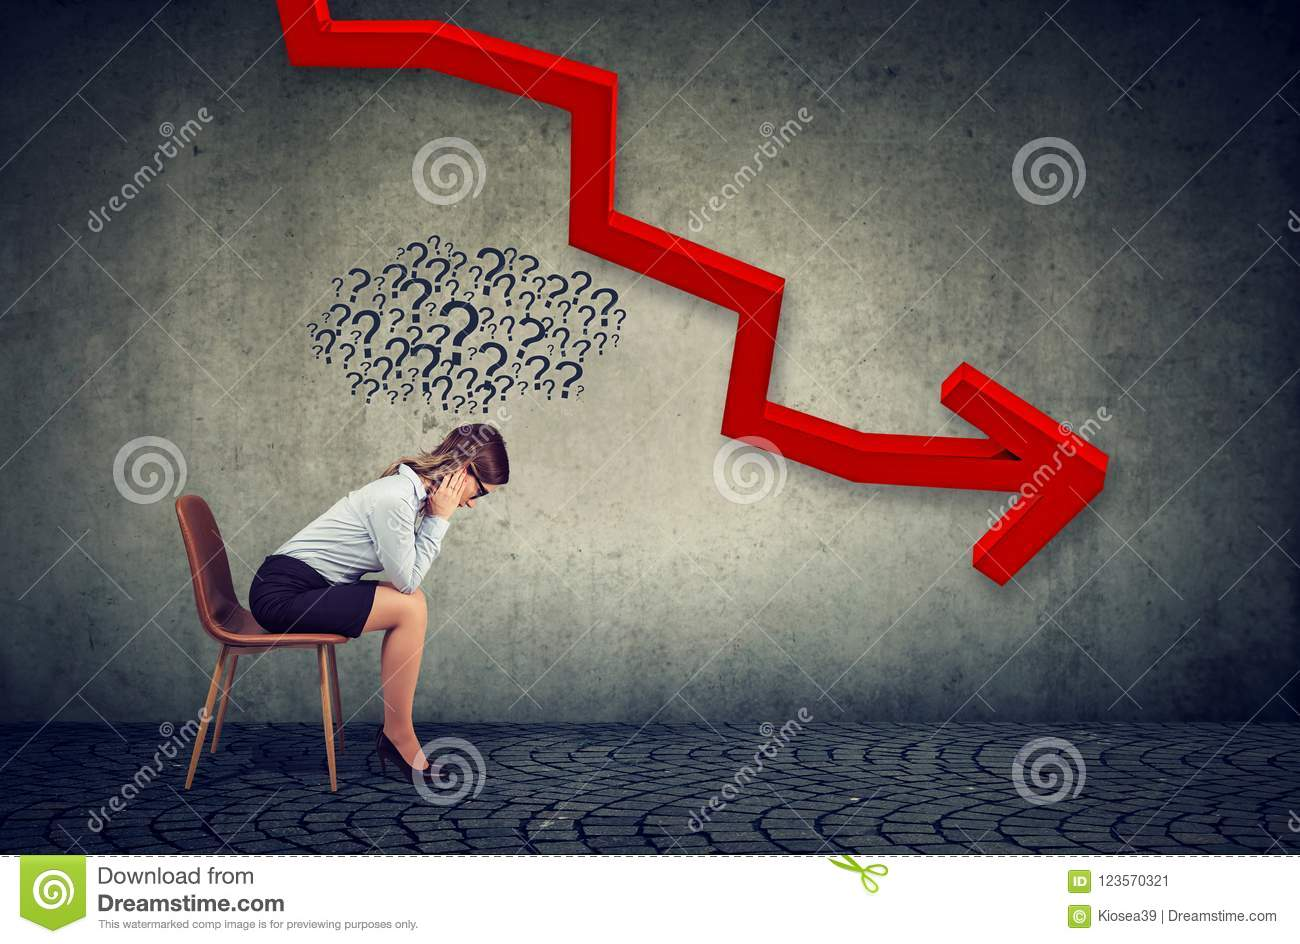 Depressed businesswoman looking down at the falling arrow feeling confused has many questions